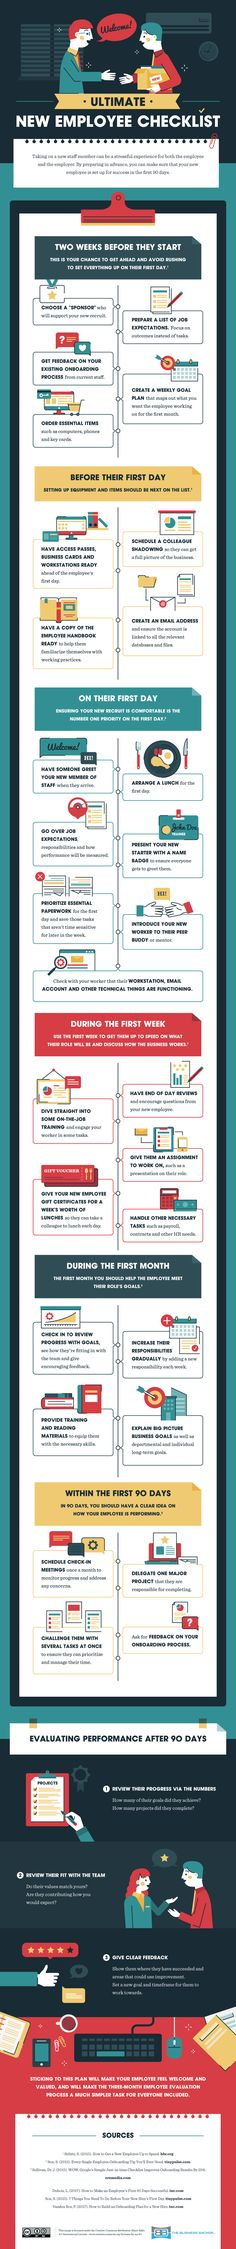 Ultimate New Employee Checklist - #infographic